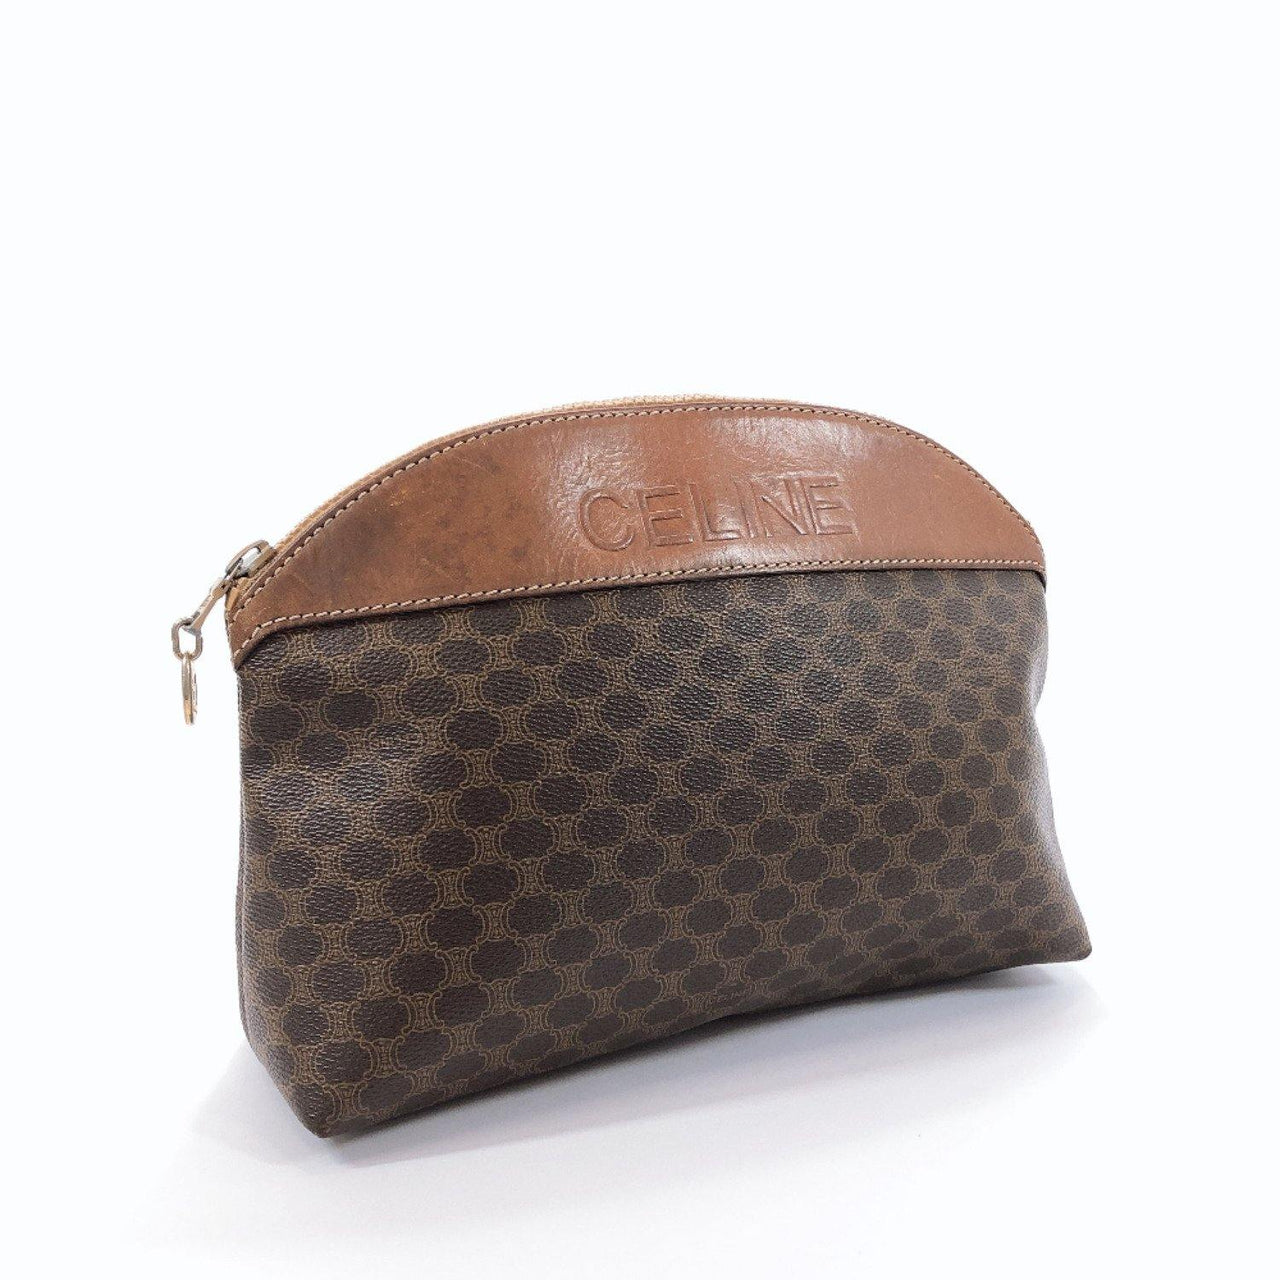 CELINE Pouch M06 Cosmetics Pouch Macadam pattern vintage PVC/leather Brown Women Used - JP-BRANDS.com